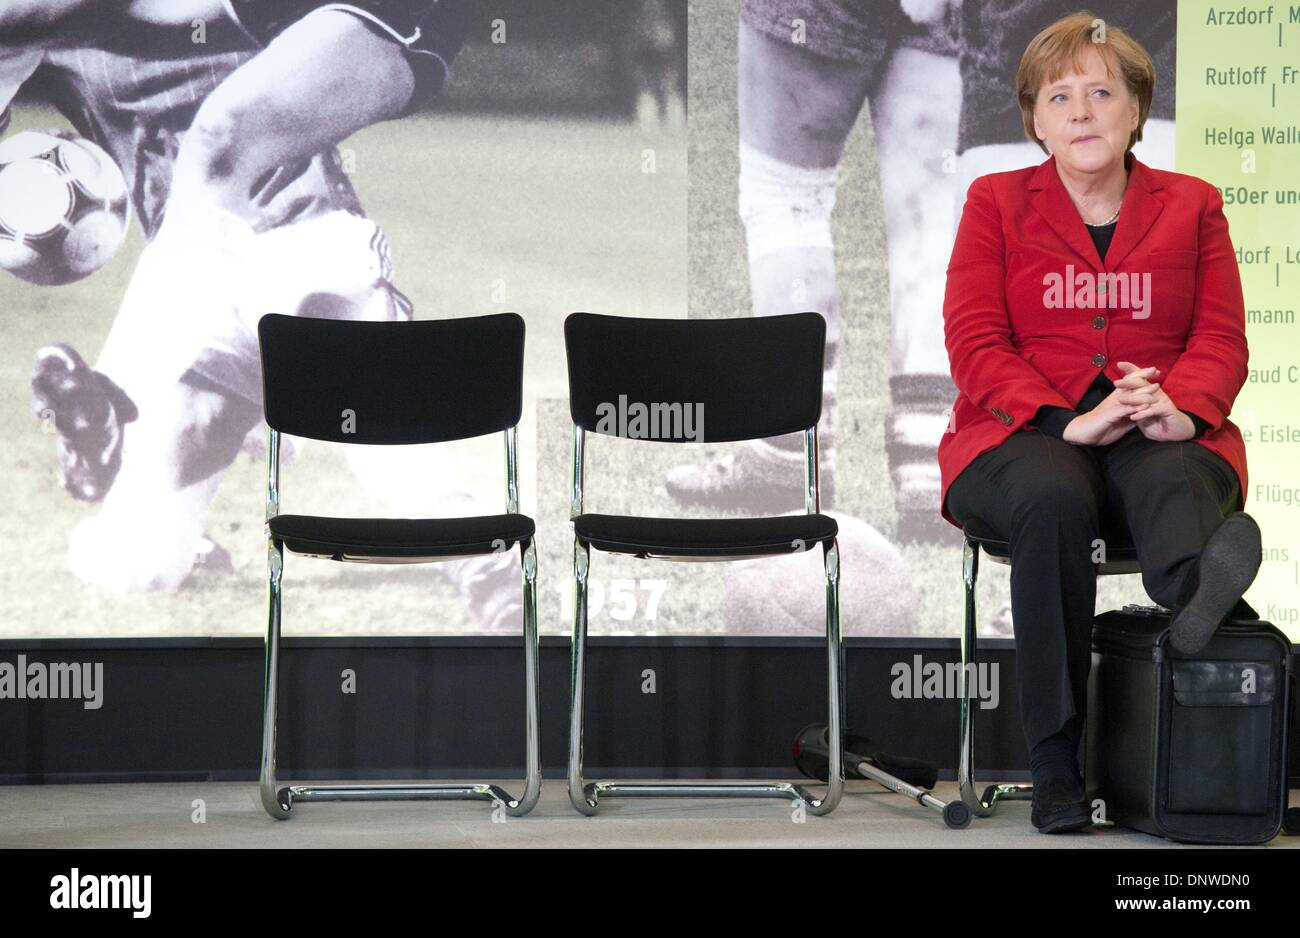 (FILE) The file picture dated 05 April 2011 shows German Chancellor Angela Merkel (CDU) who put up her leg onto a suitcase in front of a photo wall in the German Chancellery in Berlin, Germany. Photo: Tobias Kleinschmidt/dpa - Stock Image